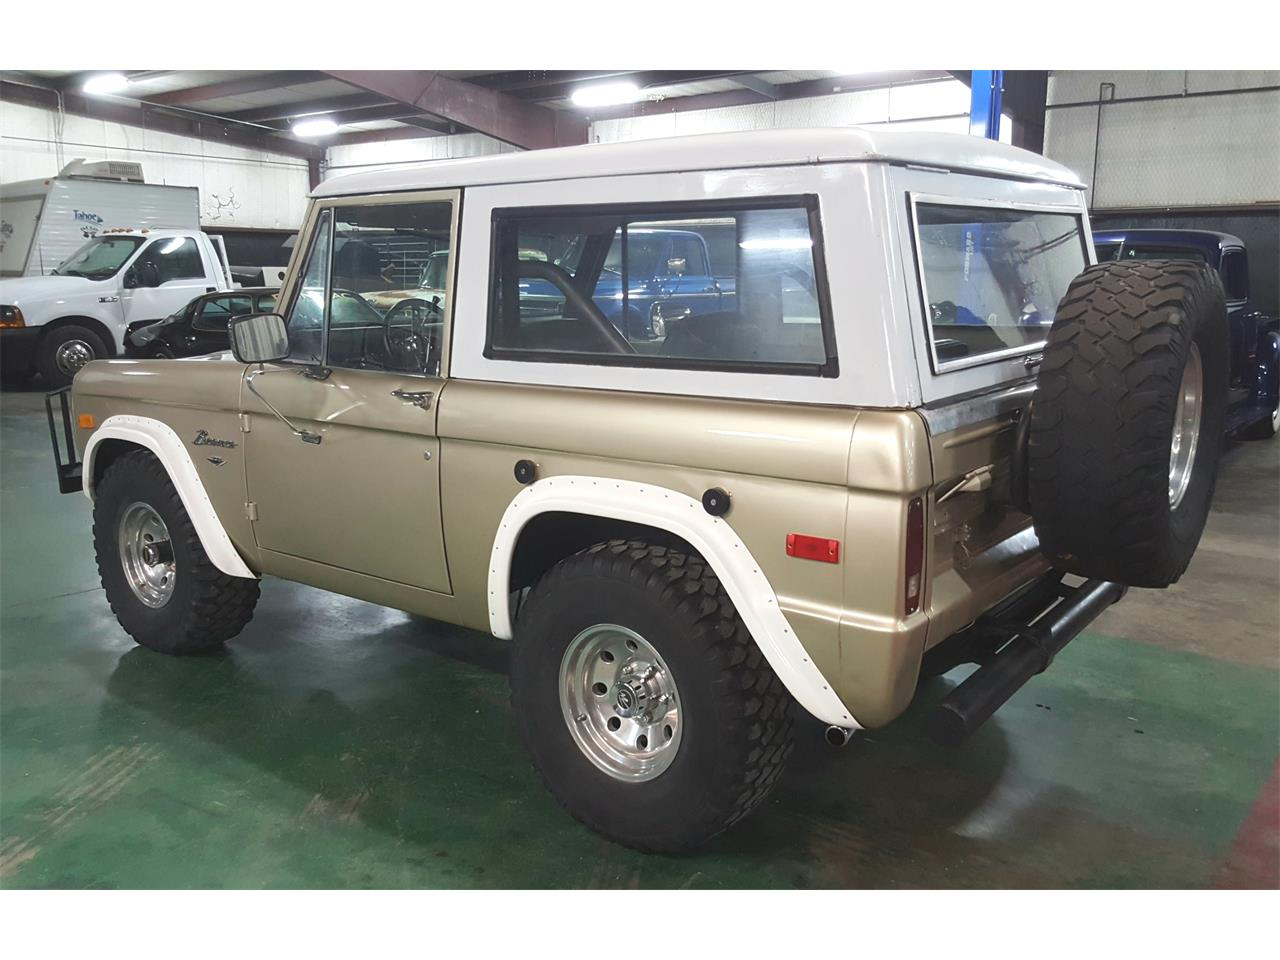 Large Picture of 1974 Ford Bronco located in Texas - $18,900.00 - MO2Q